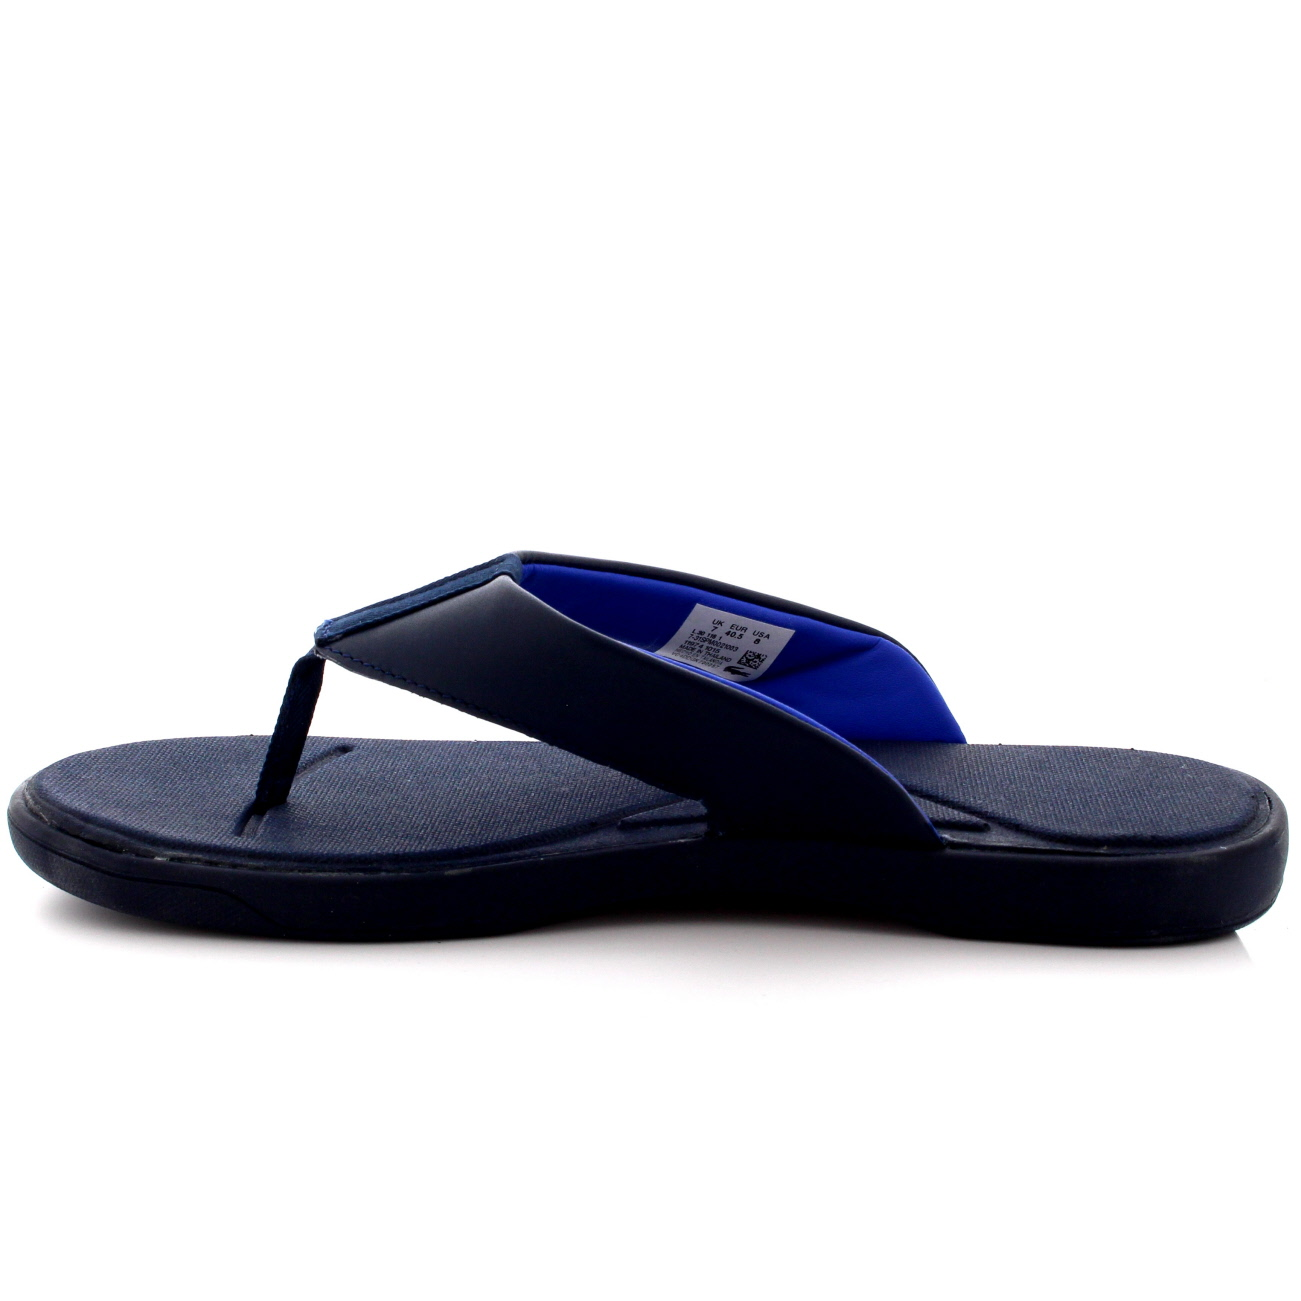 ad7506c7d Mens Lacoste Light.30 116 Beach Pool Leather Holiday Flip Flops ...